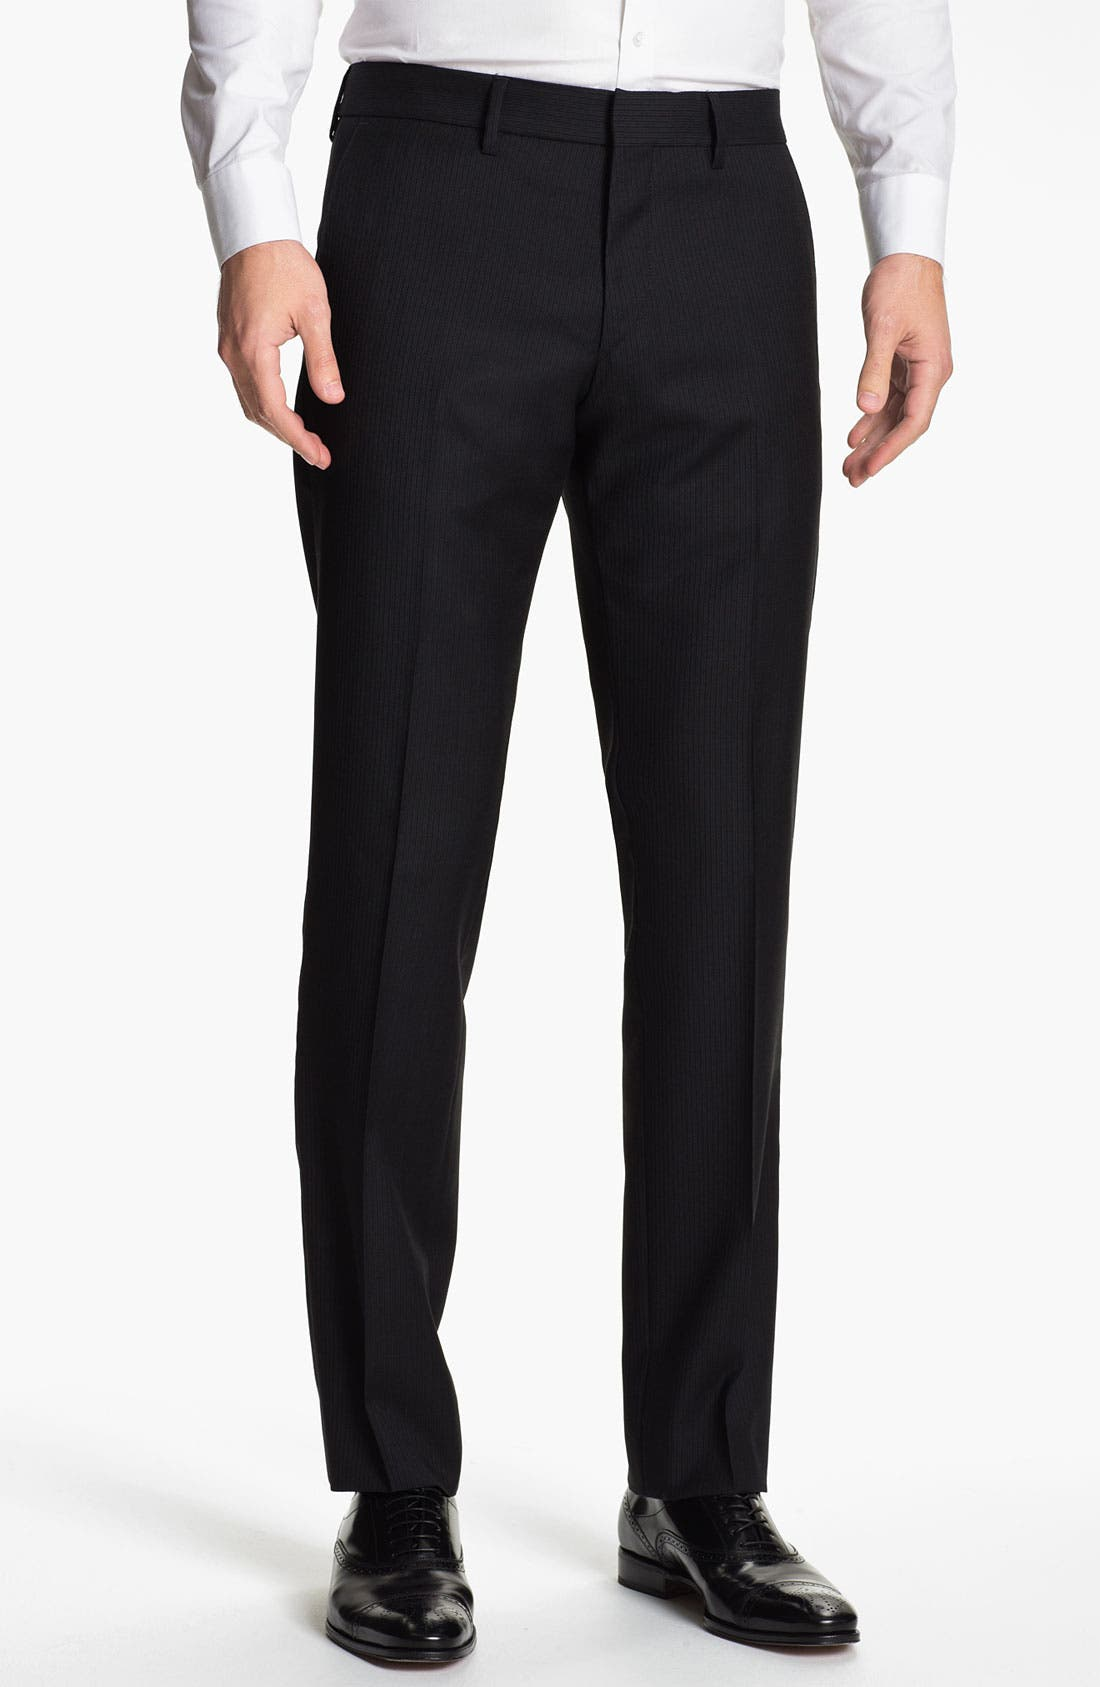 Alternate Image 1 Selected - BOSS Black 'Crigan' Pinstriped Flat Front Wool Trousers